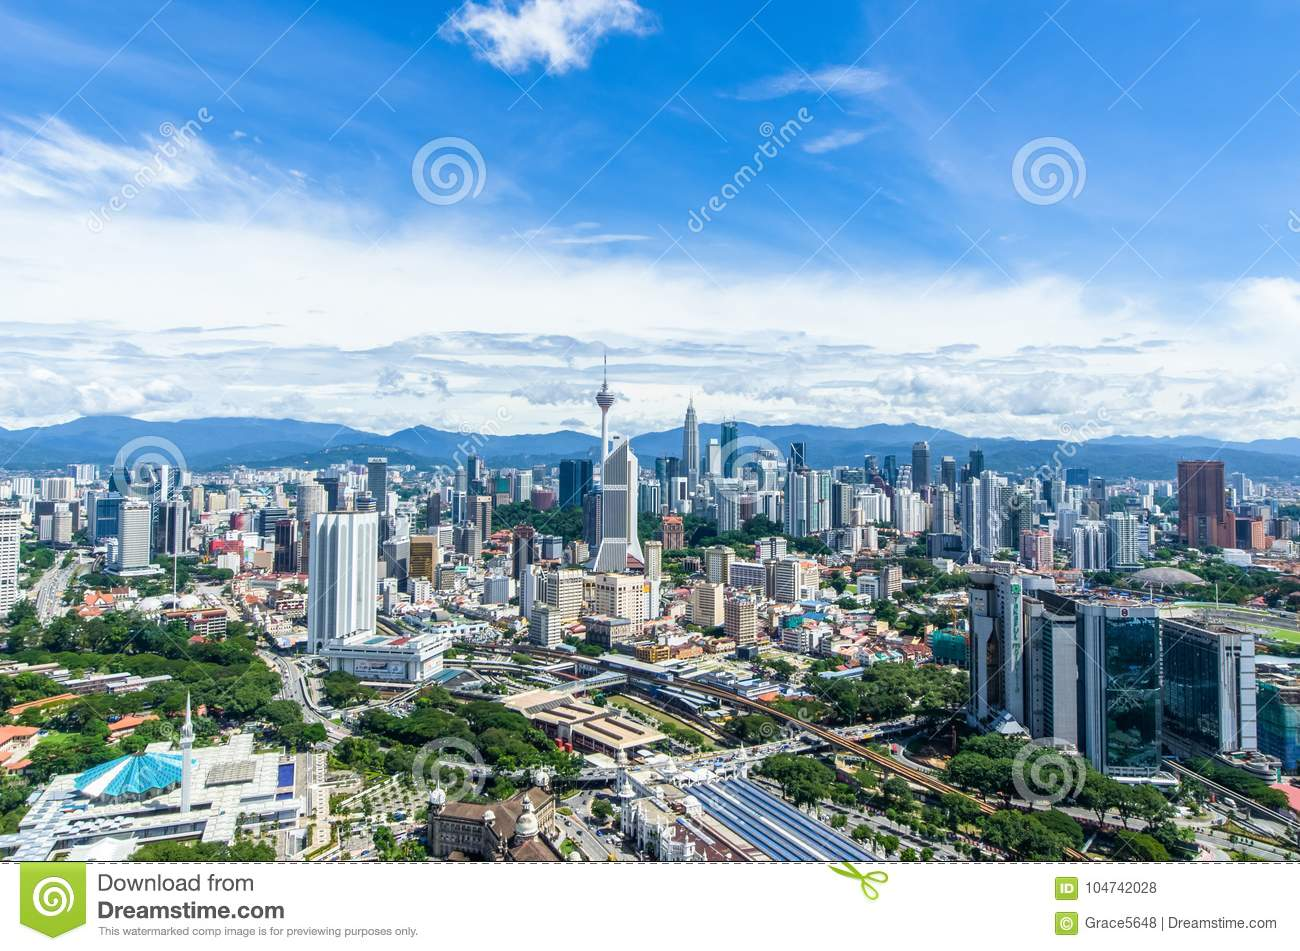 Asian capital city beginning with k #1